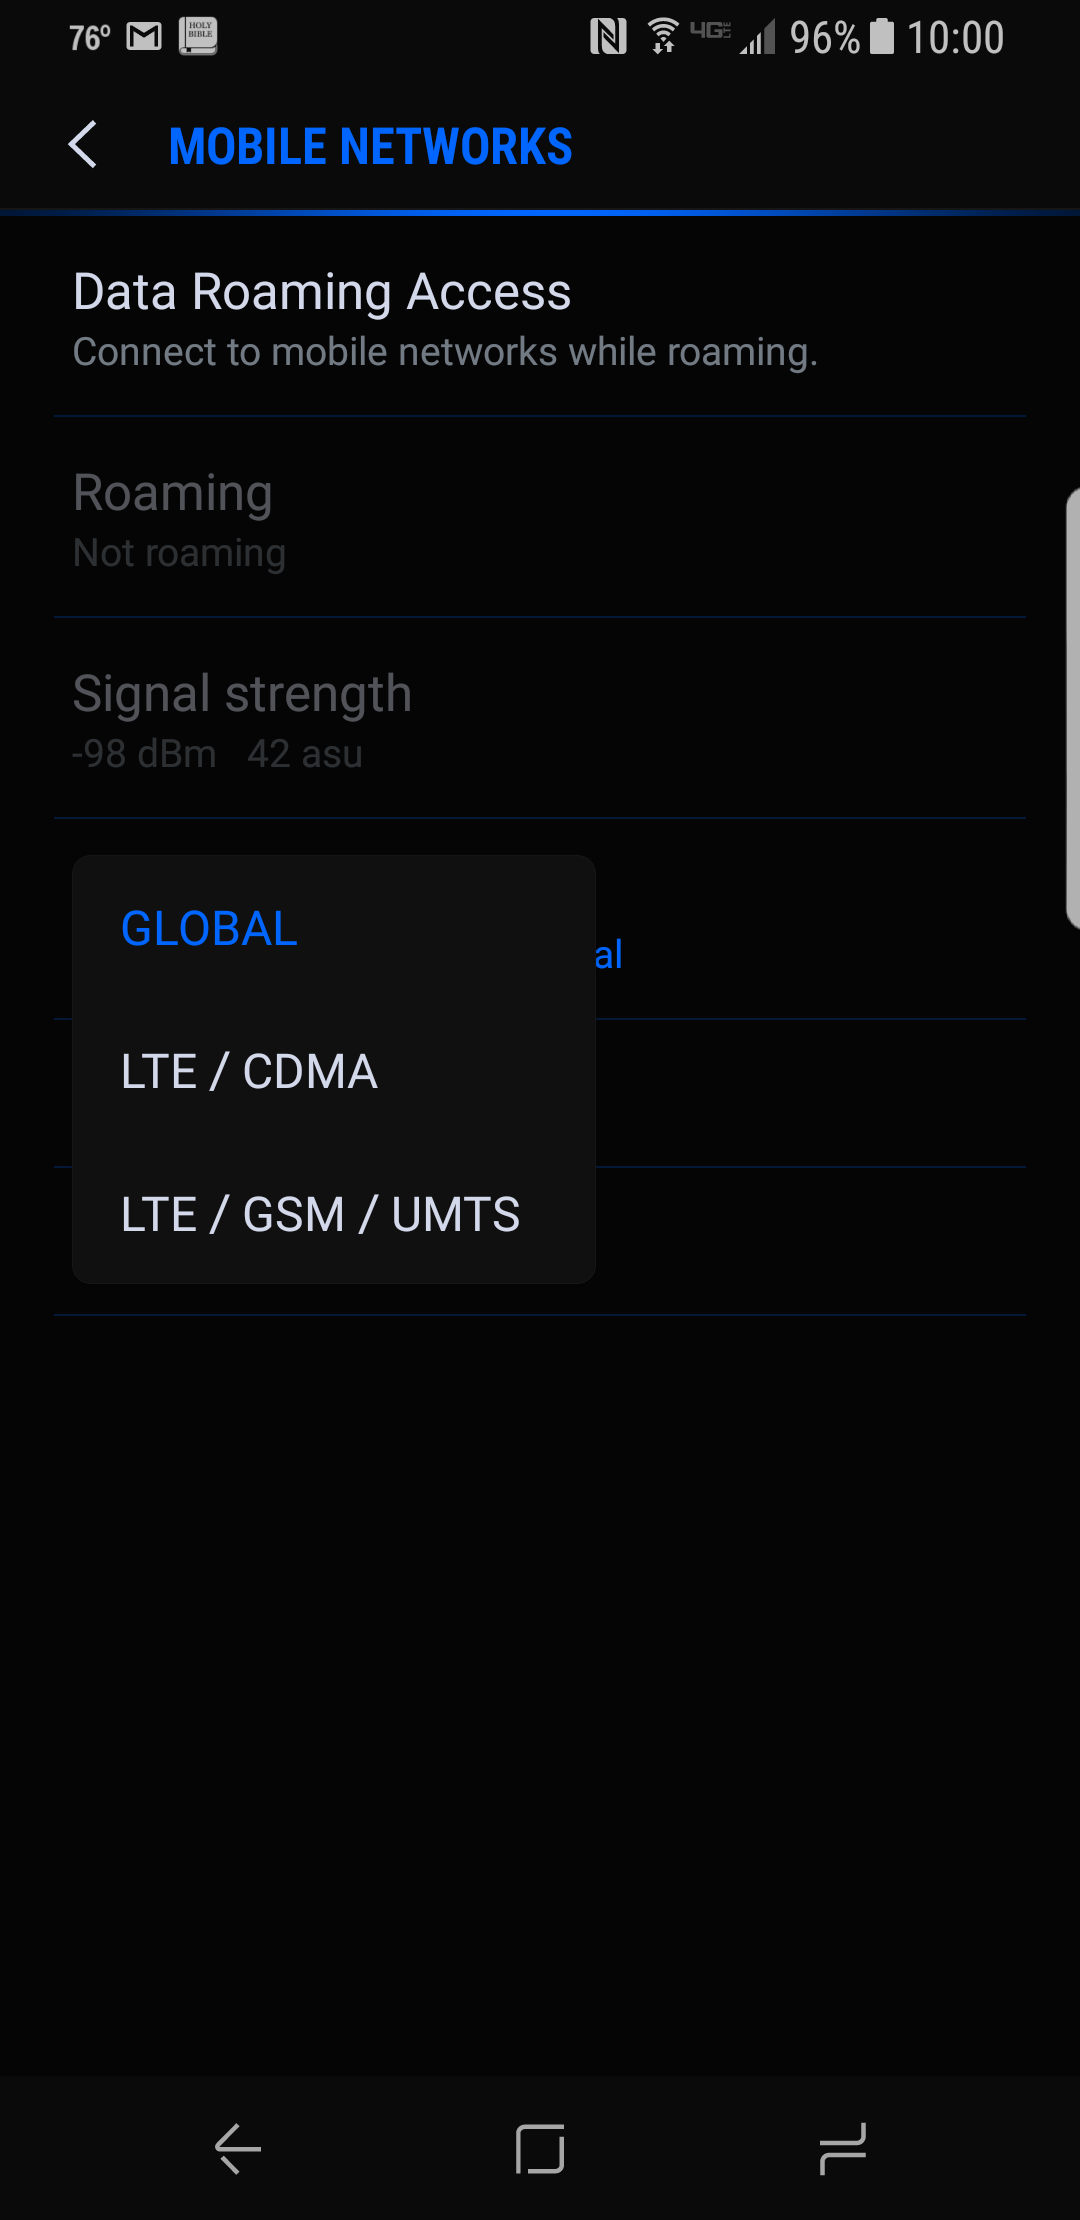 Verizon Galaxy S8 Do you select Global, or the other options